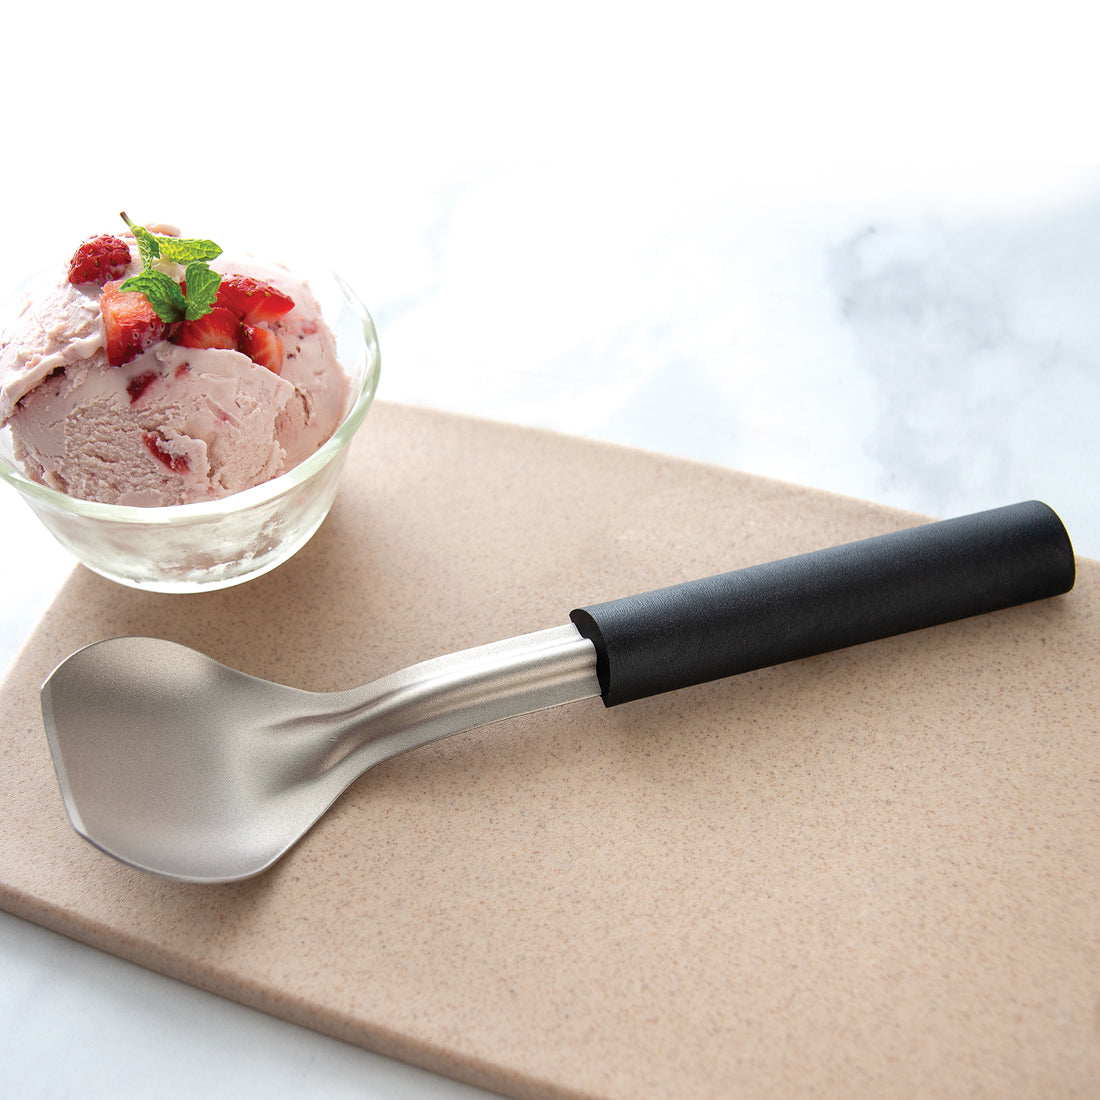 Rada Cutlery Ice Cream Scoop with black handle and stainless steel shaped bowl.